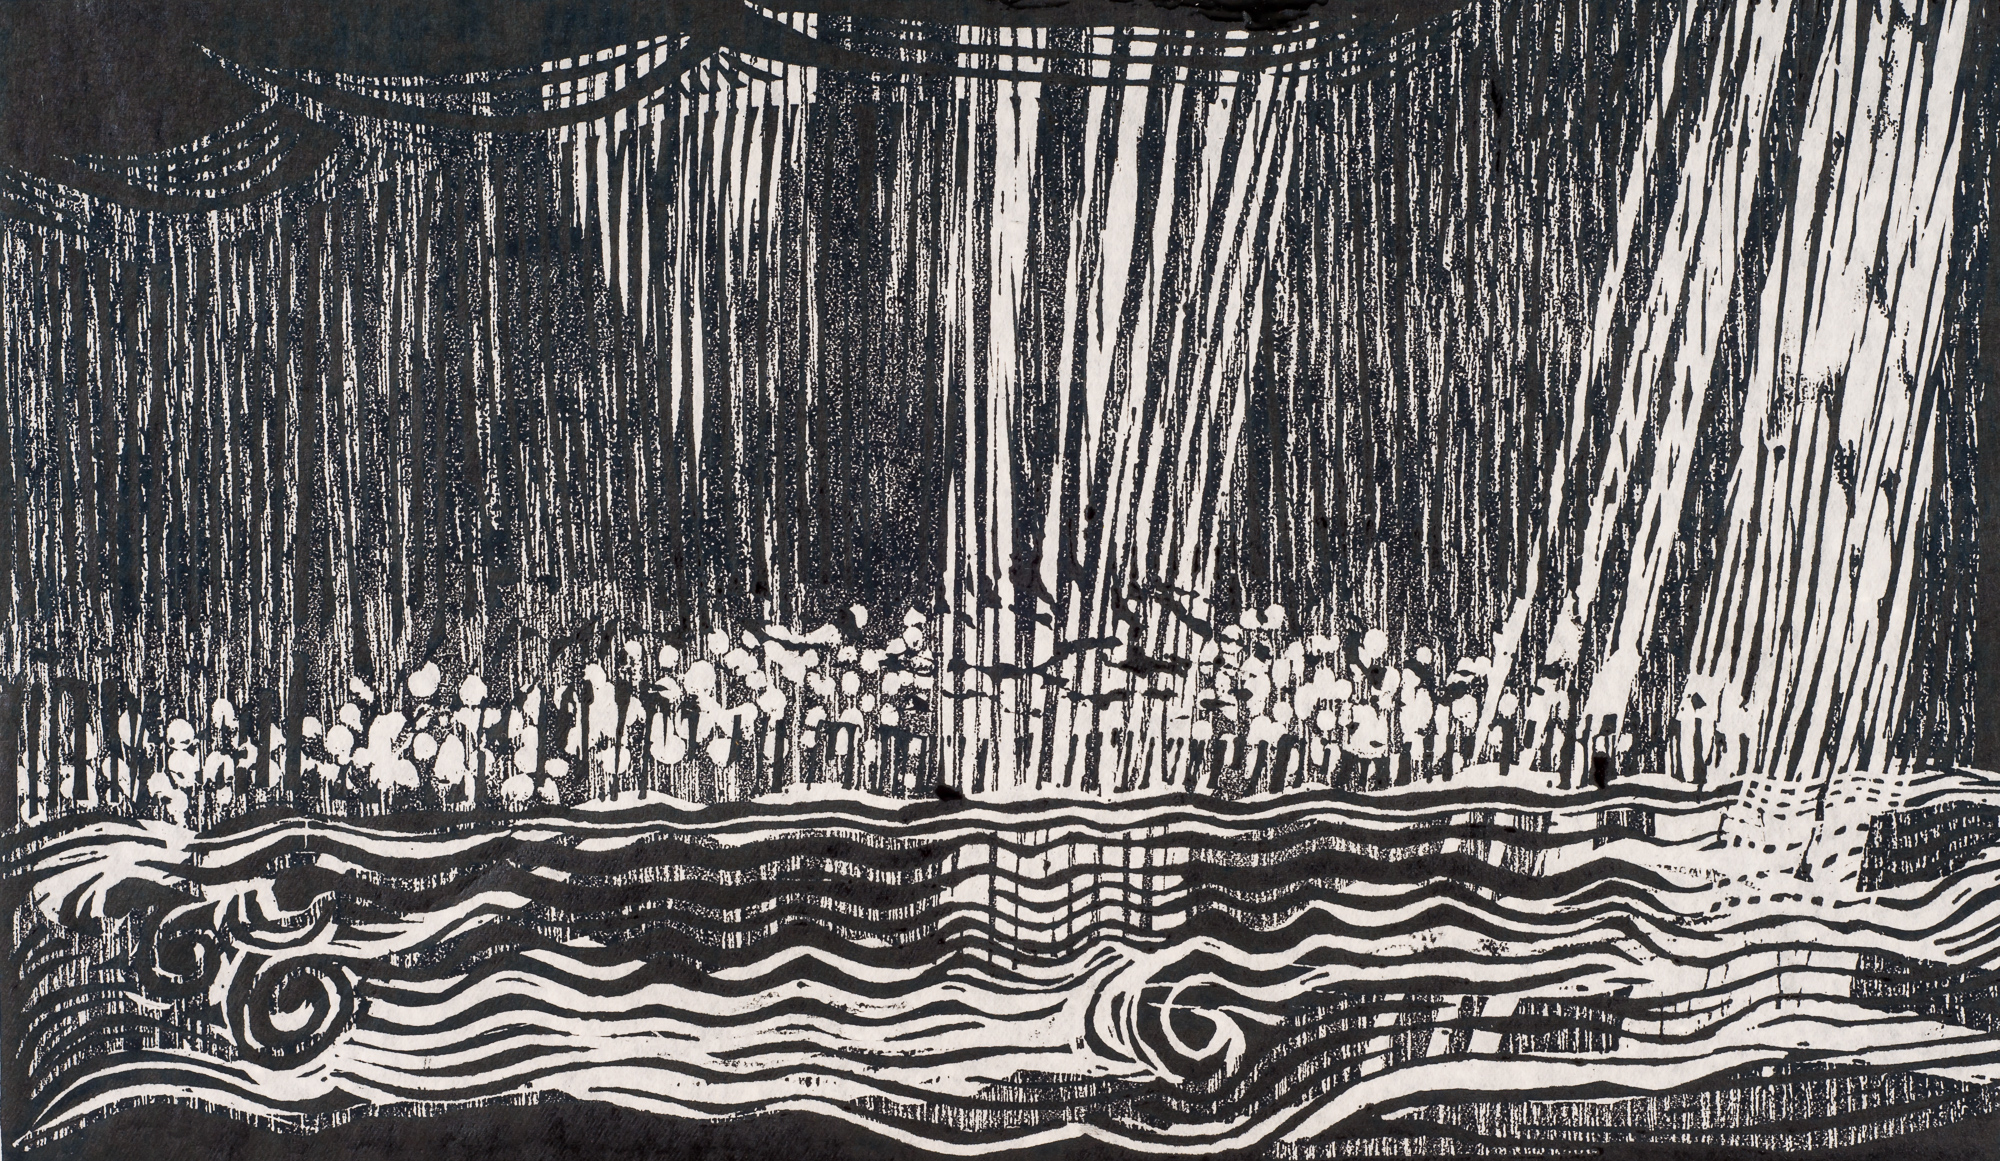 Rain on the River 8¾x15, 1994